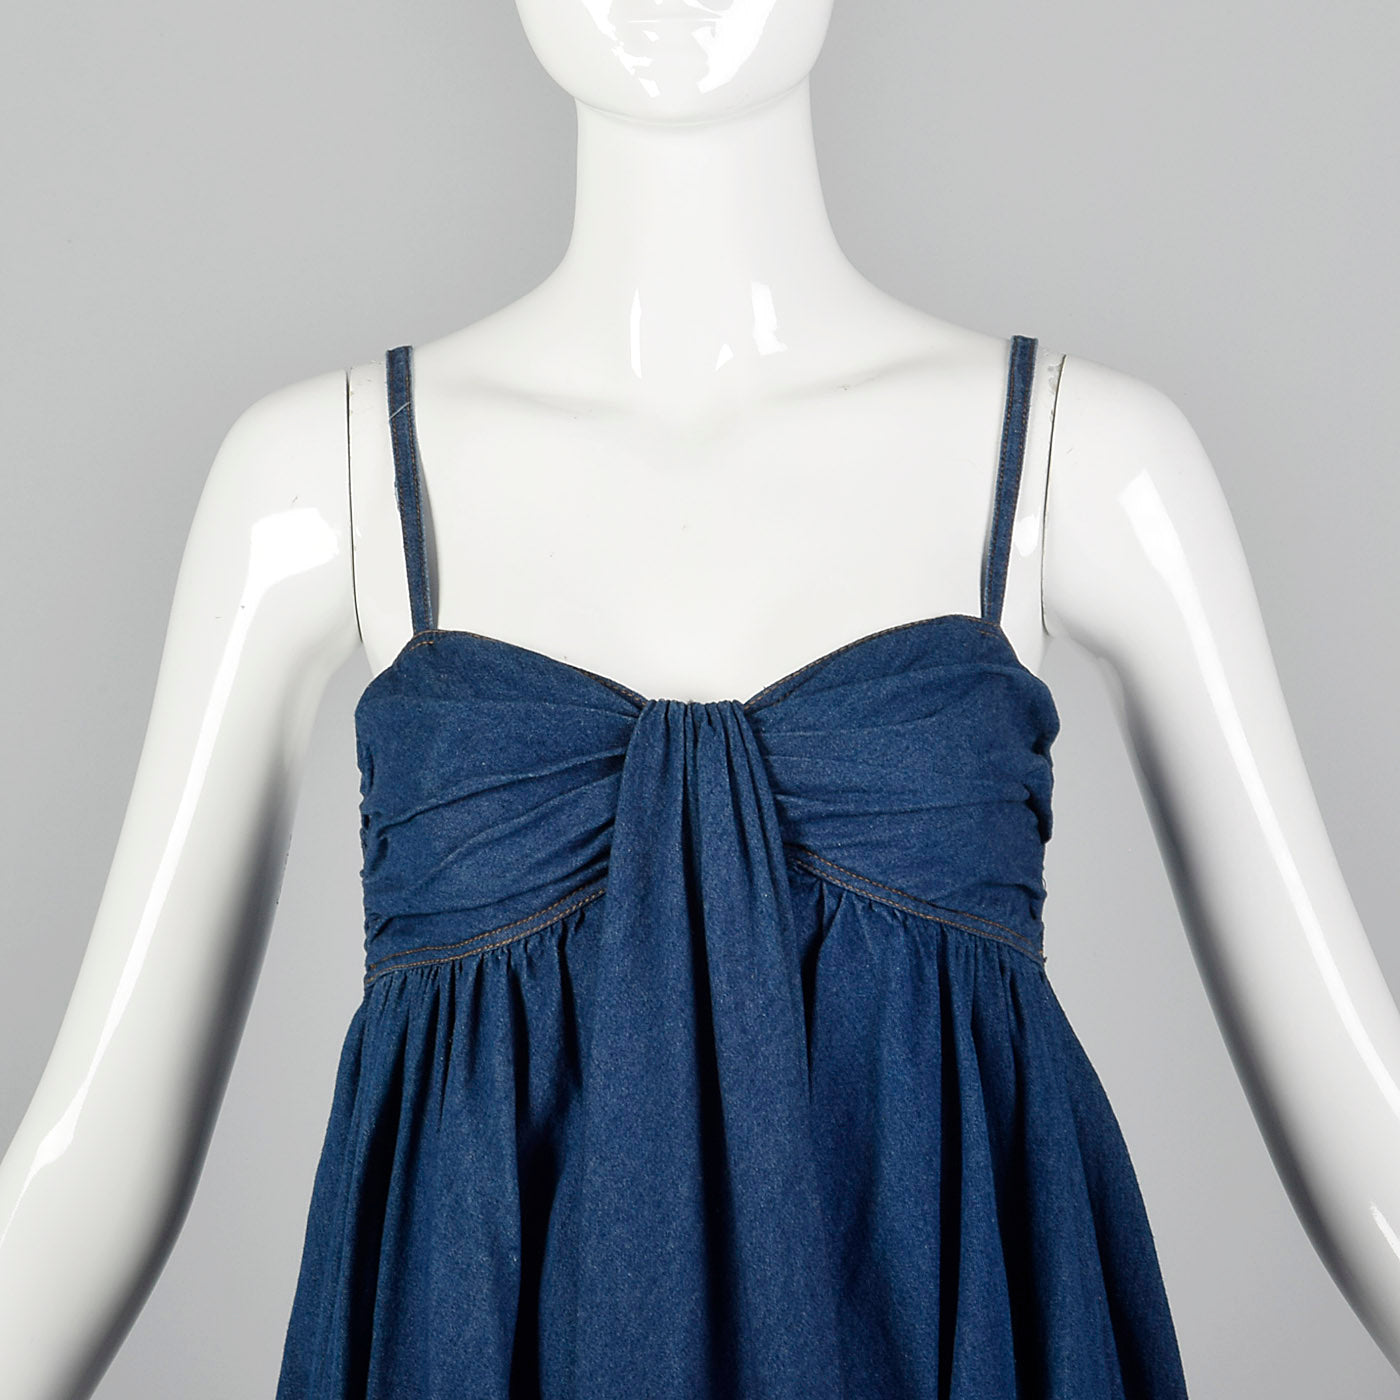 1990s DKNY Denim Babydoll Mini Dress